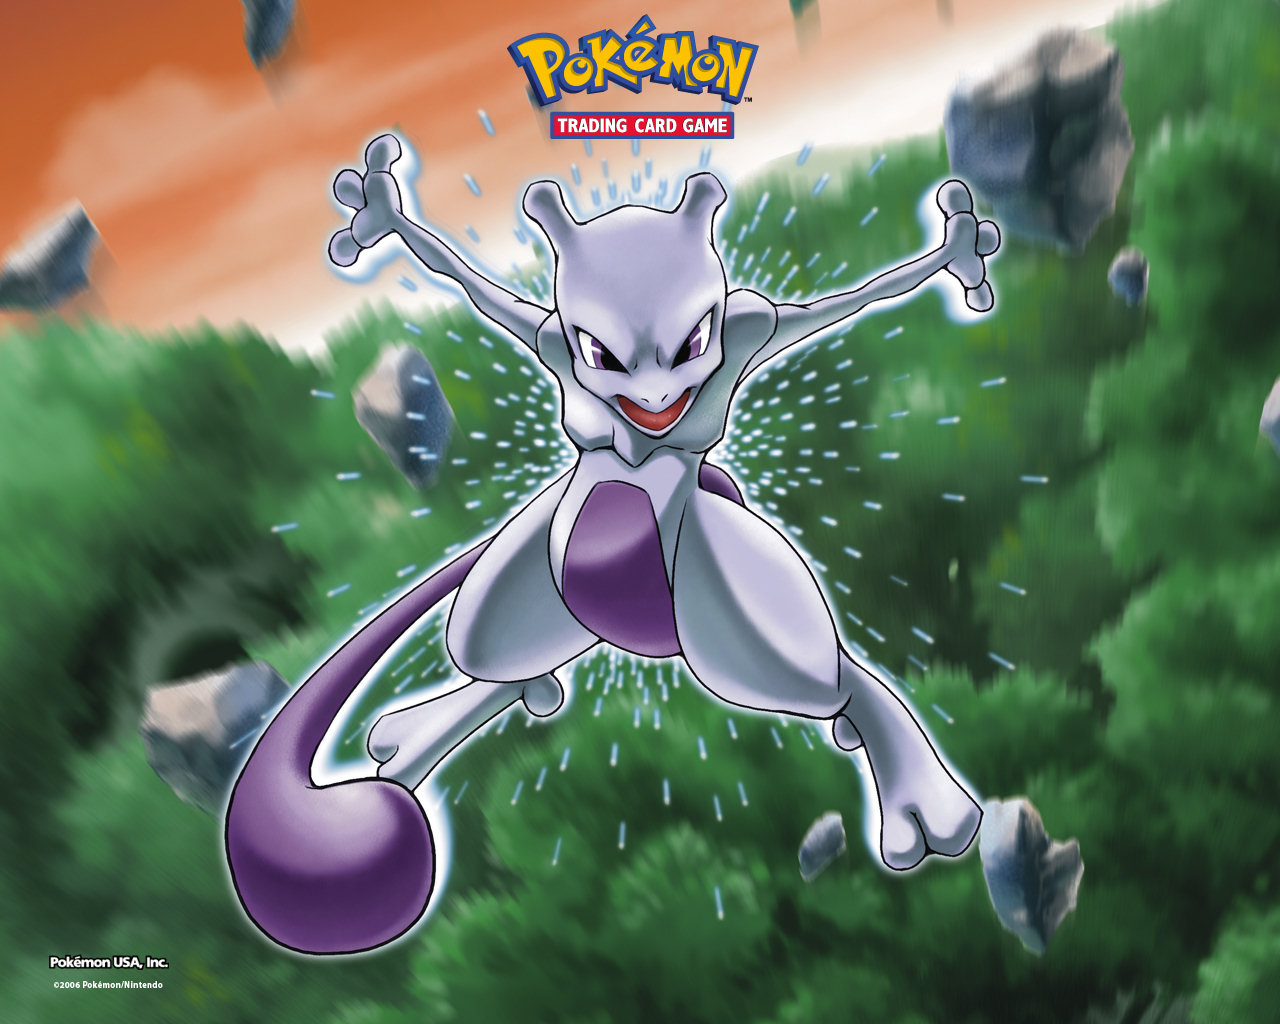 Posted by Uchiha Mewtwo at 652 PM 1280x1024